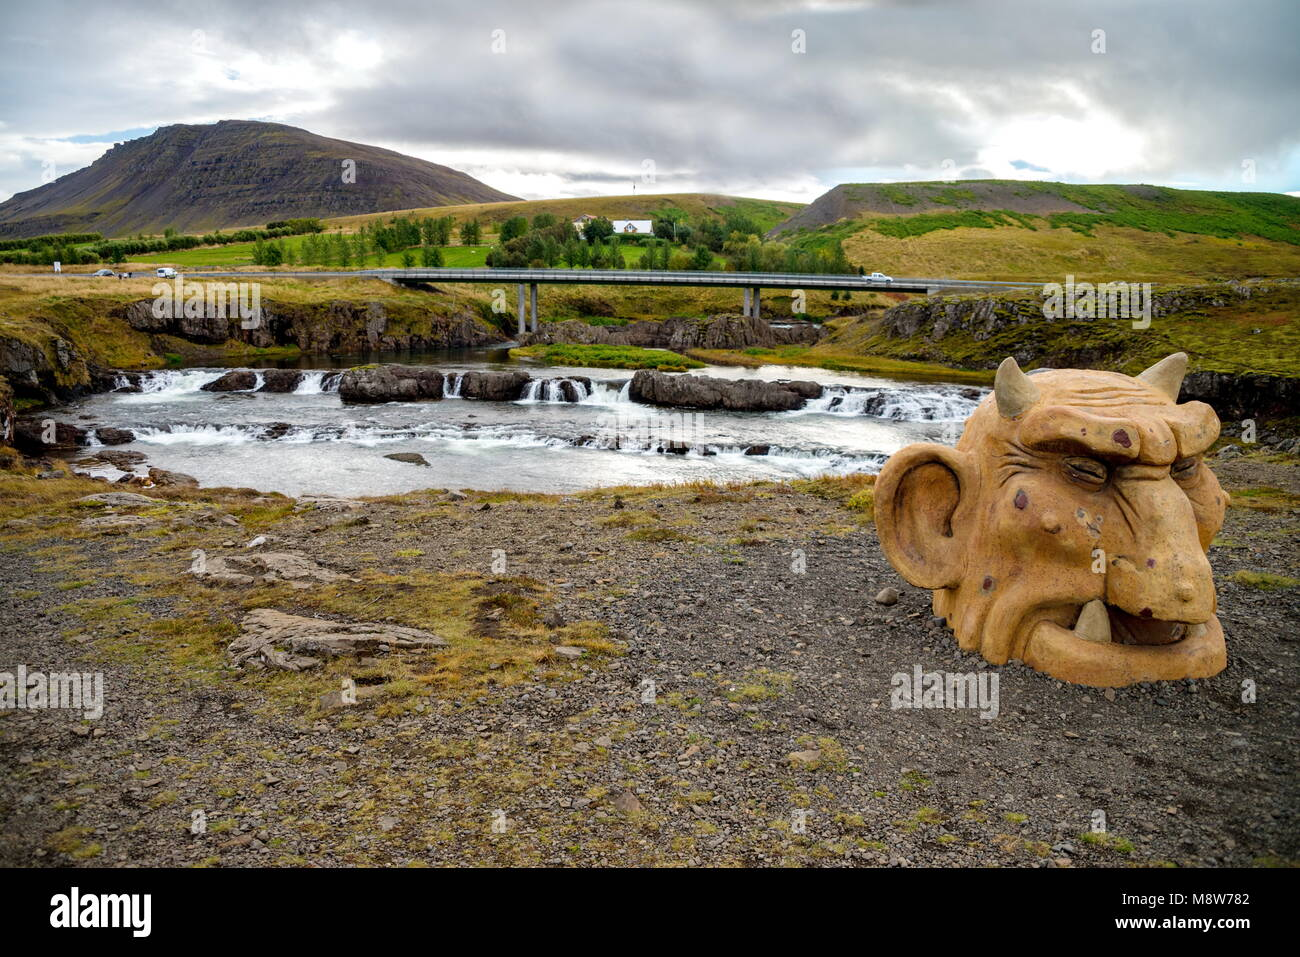 Troll statues in Iceland - Stock Image